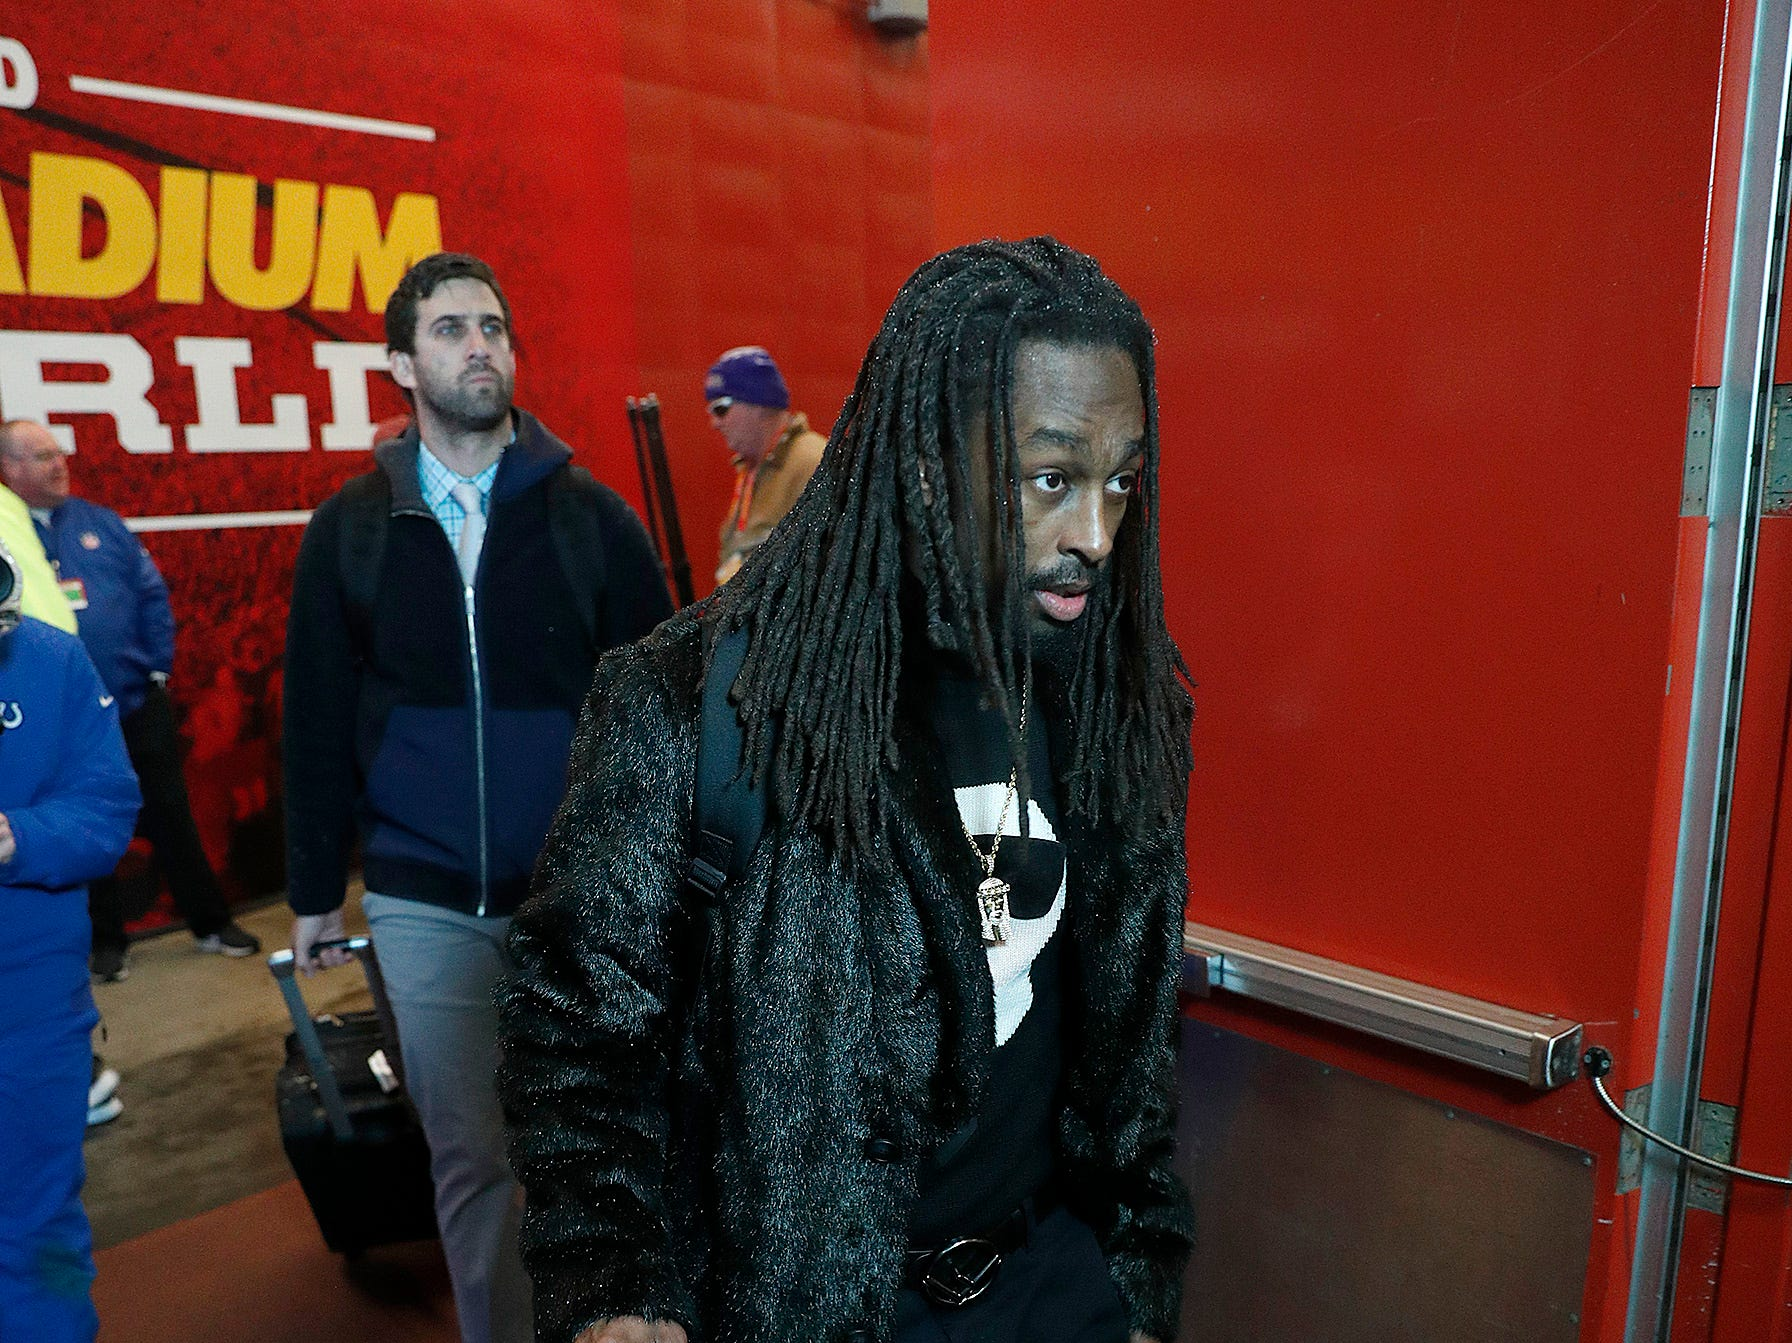 Indianapolis Colts wide receiver T.Y. Hilton (13) and the Indianapolis Colts arrive for their game against the Kansas City Chiefs at Arrowhead Stadium in Kansas City, MO., on Saturday, Jan. 12, 2019.